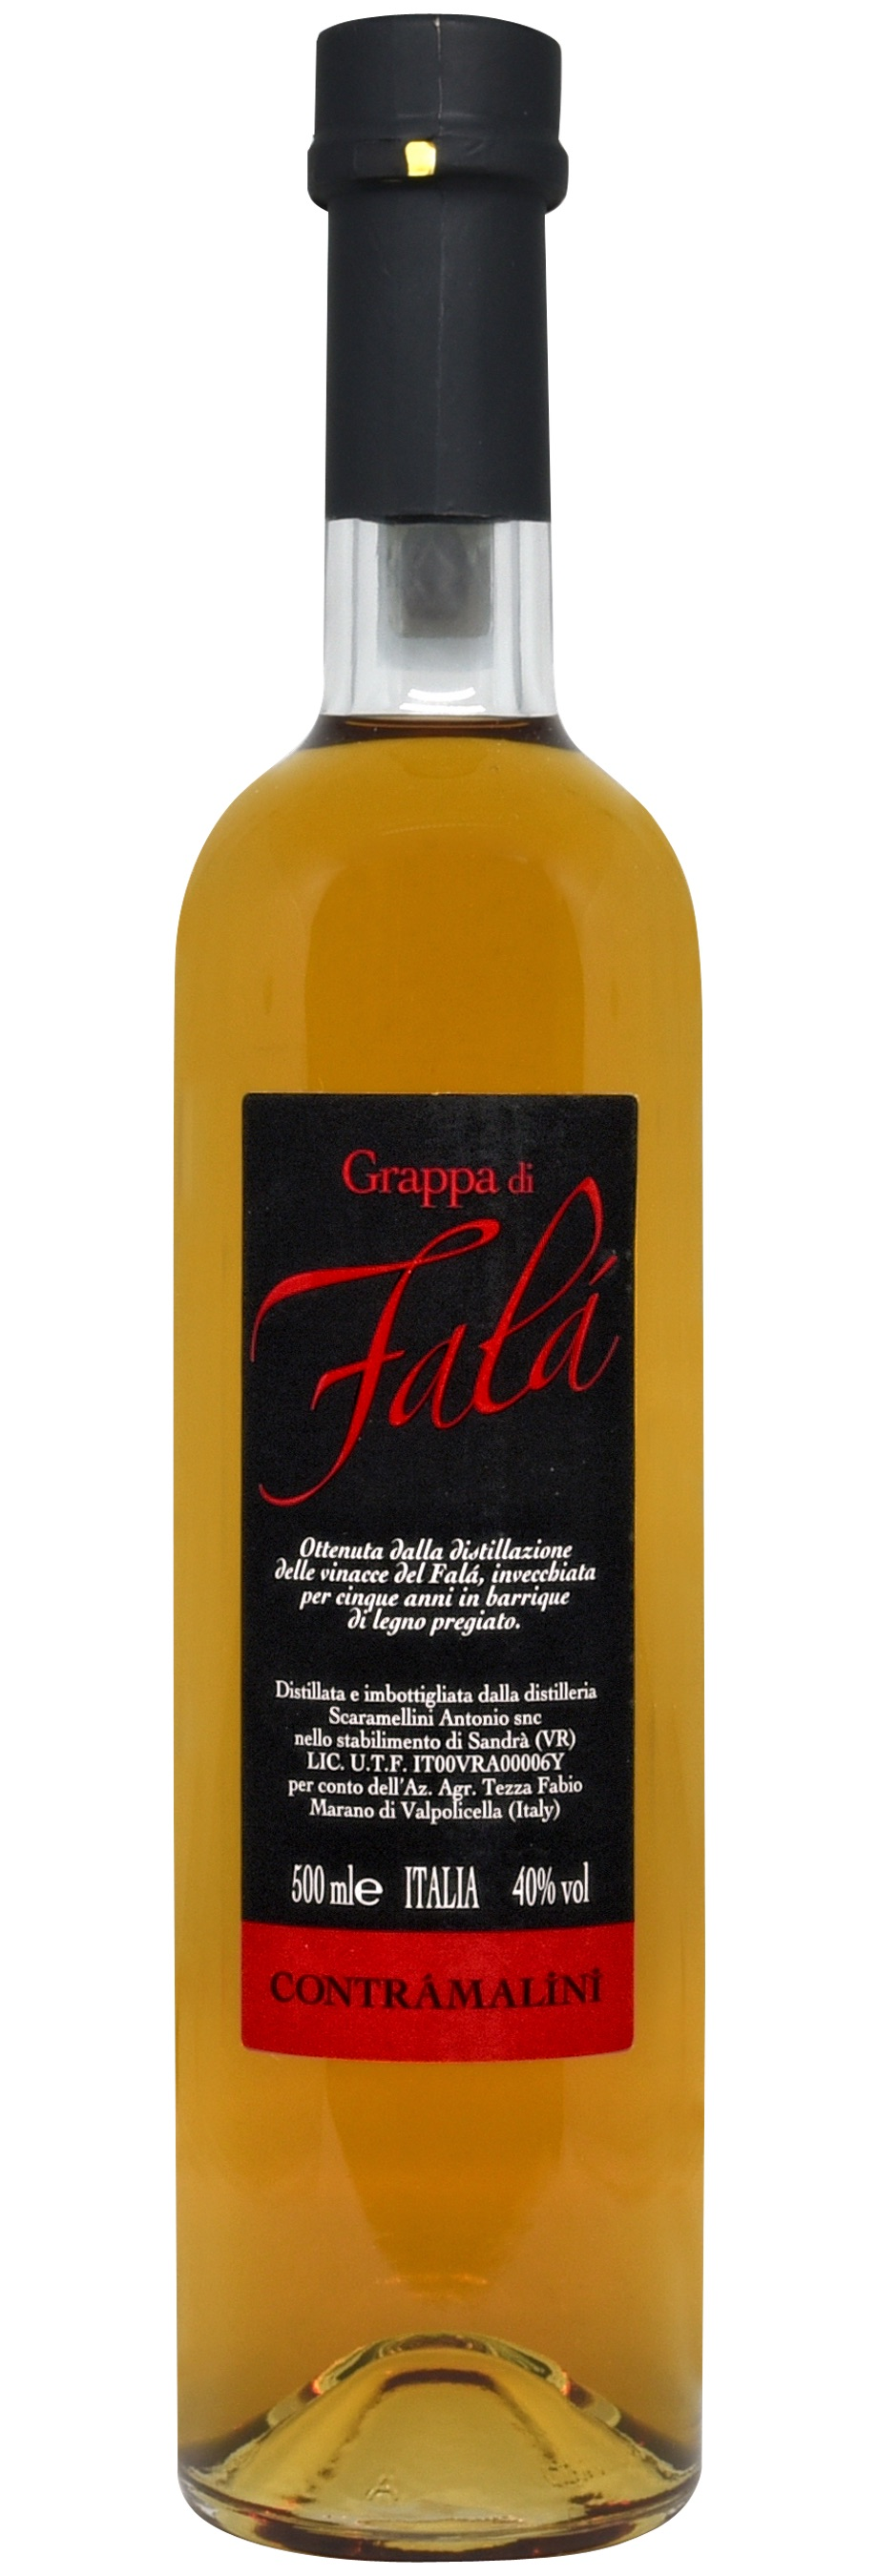 - Grappa di FalàObtained by distilling the grape pomace of our Falà, and aged for five years in top-quality oak barriques.500 ML - 40% vol.